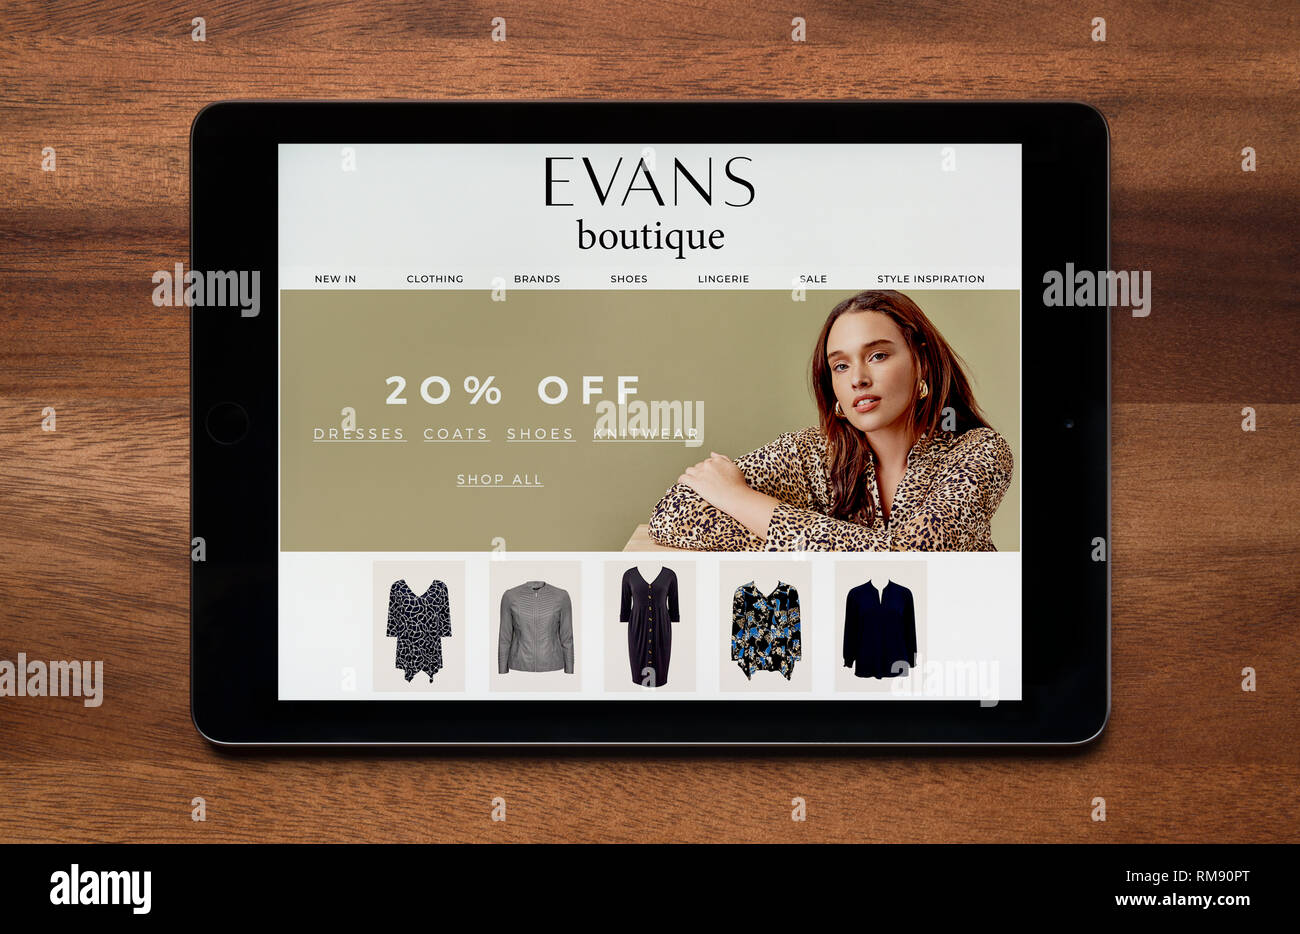 The website of Evans Boutique is seen on an iPad tablet, which is resting on a wooden table (Editorial use only). - Stock Image